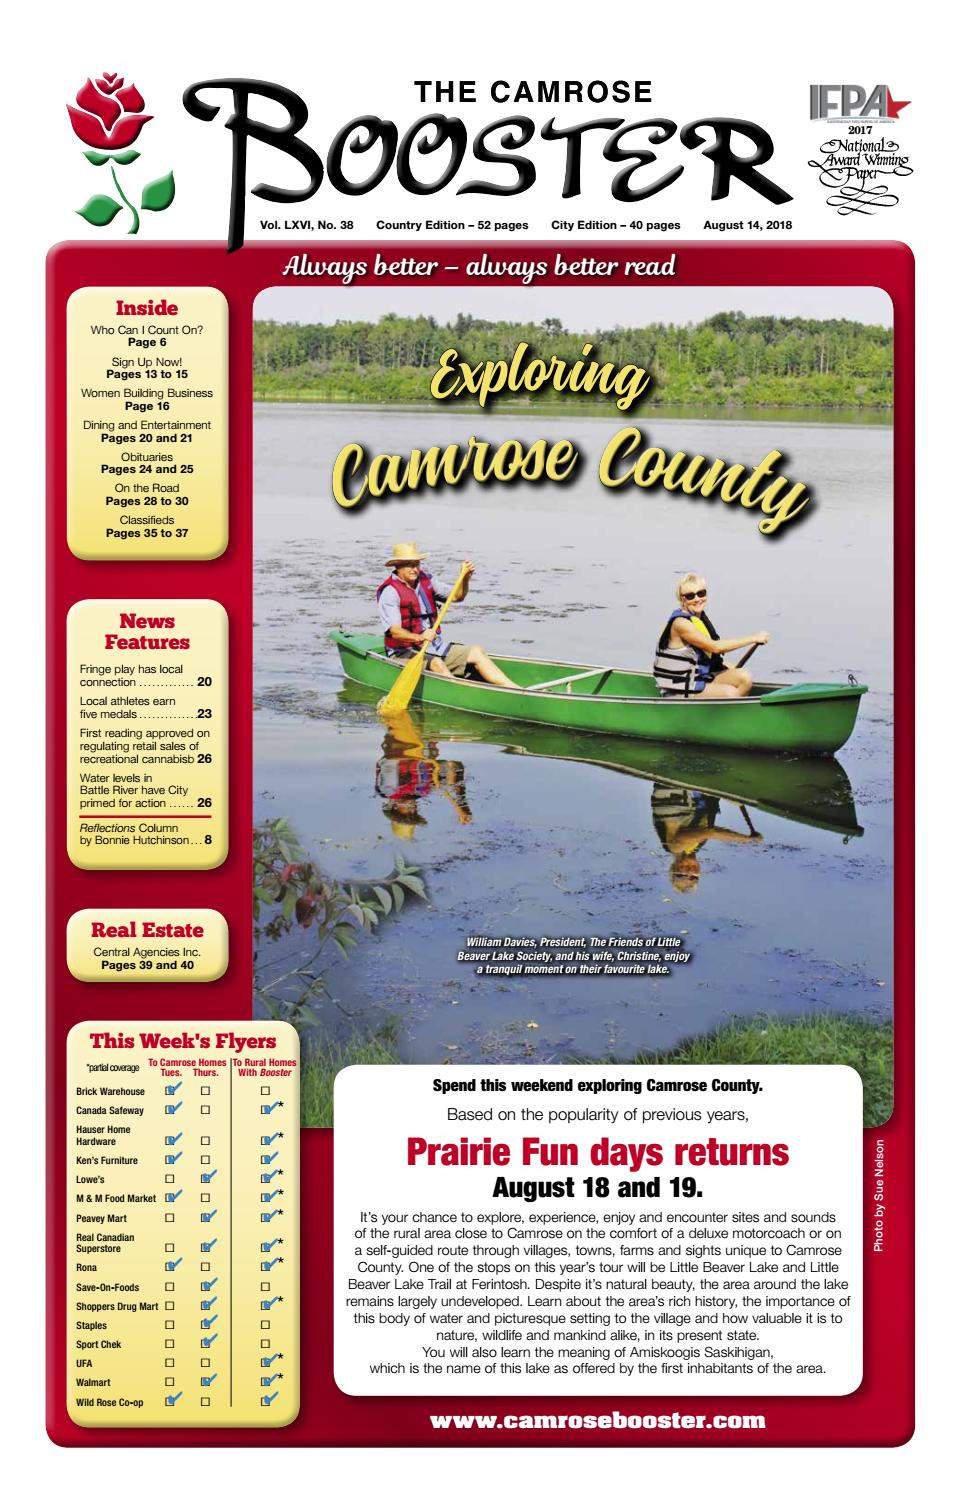 turman hardwood flooring colors of august 14 2018 camrose booster by the camrose booster issuu inside page 1